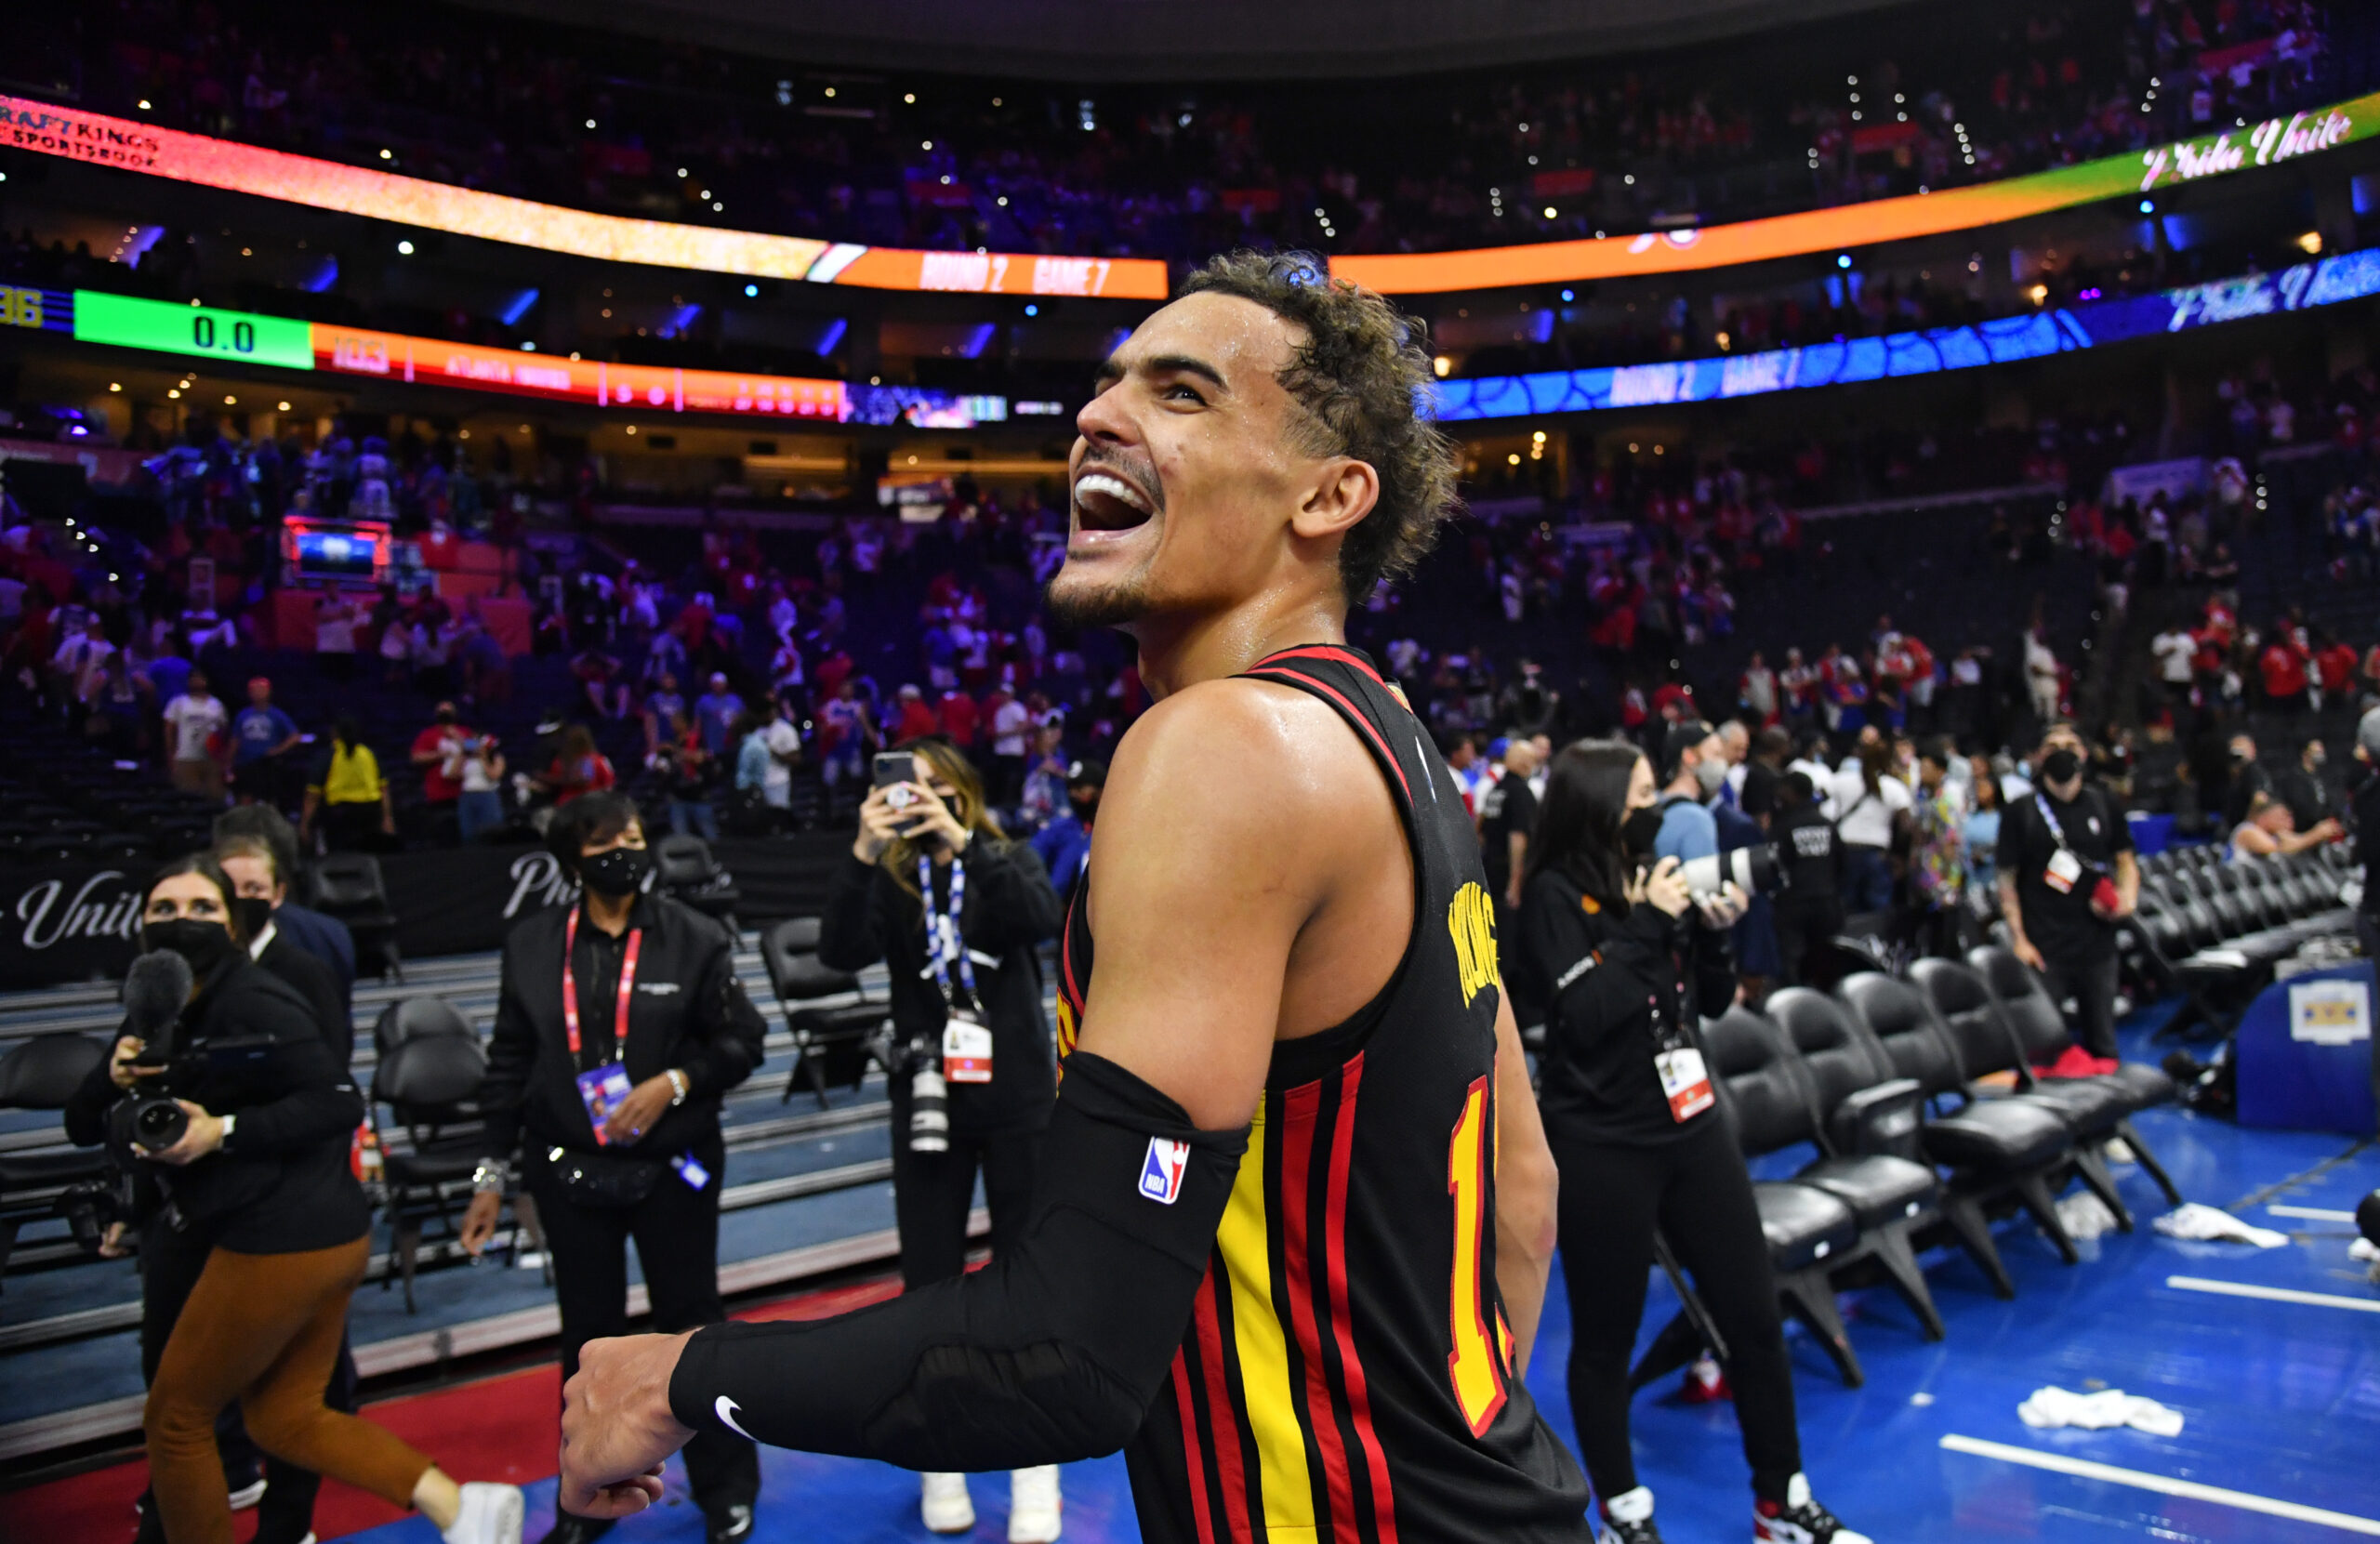 Next generation of stars step into the spotlight in conference finals